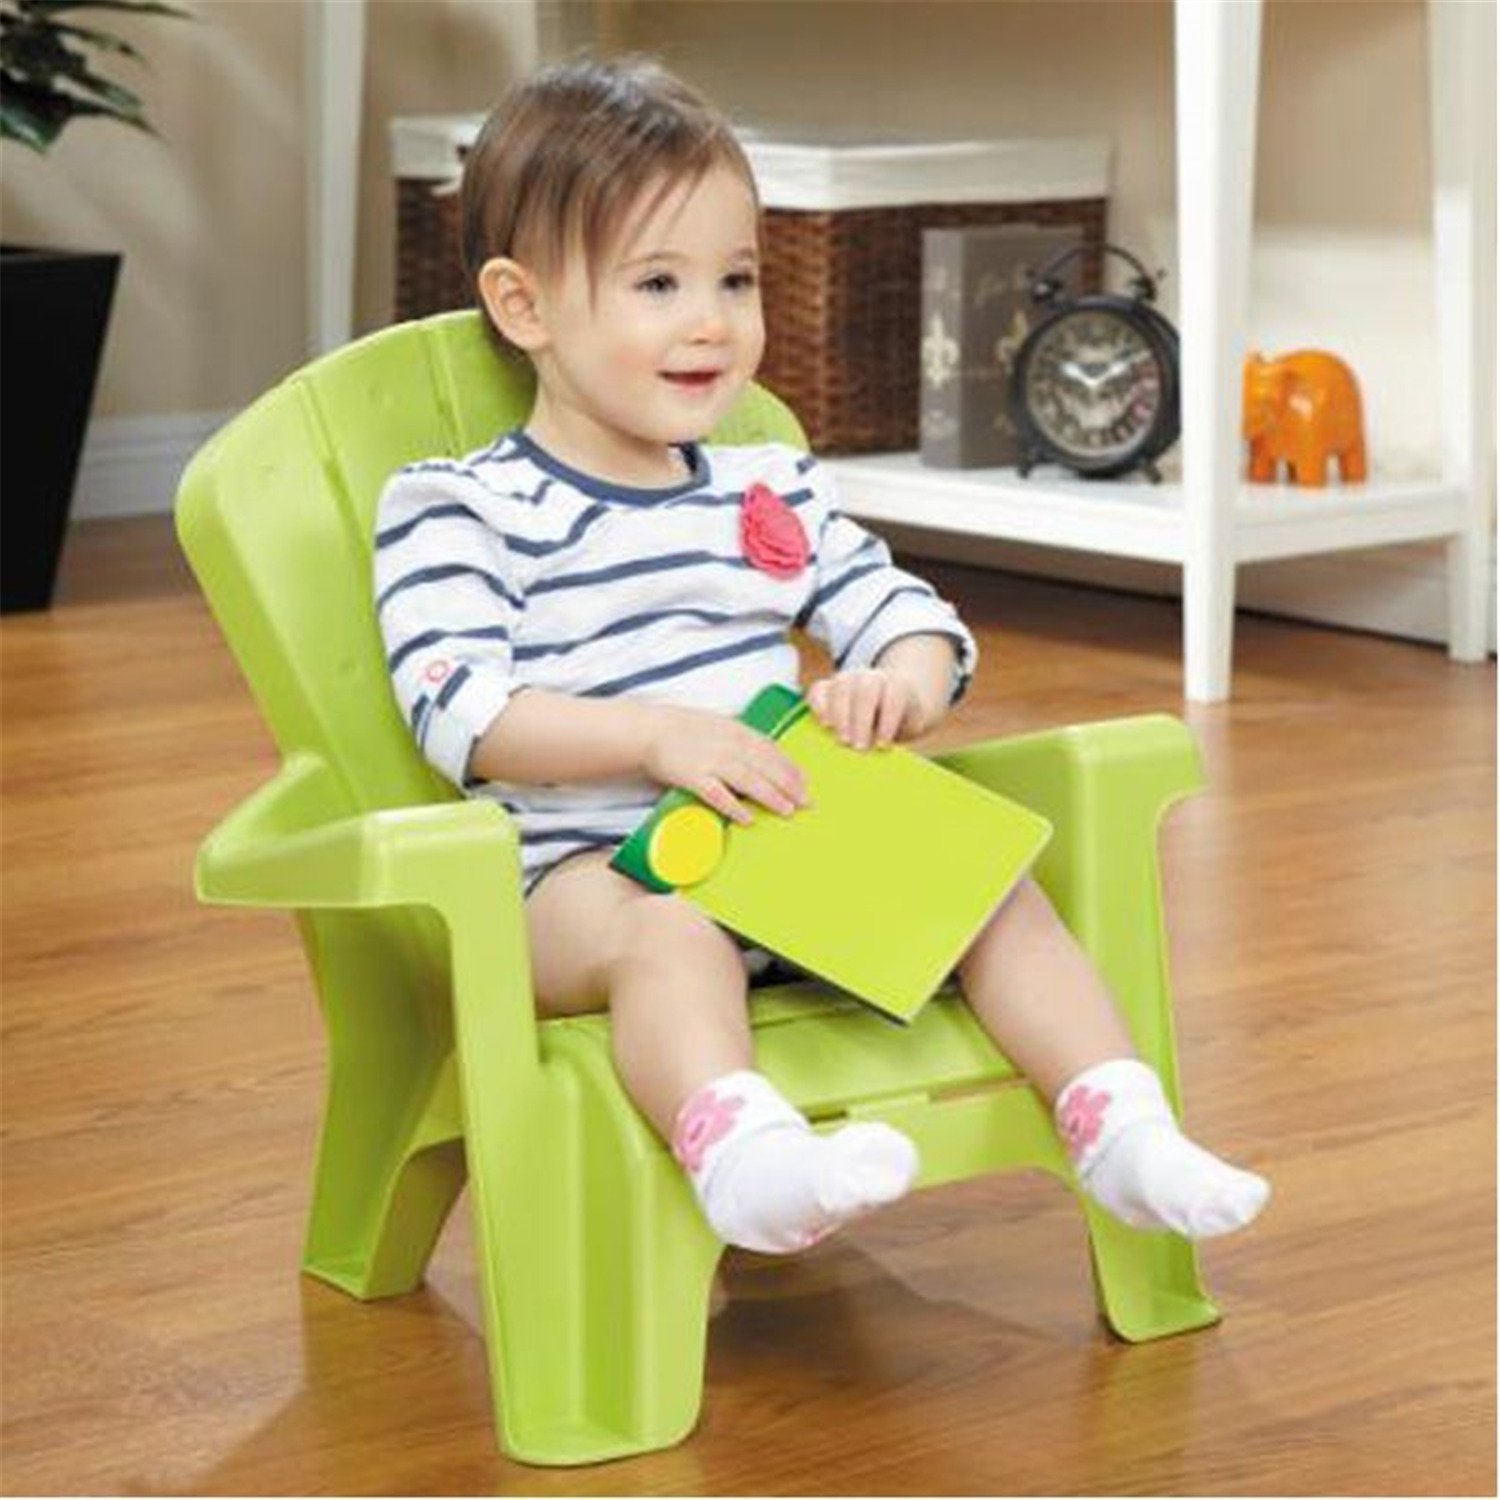 Little Tikes Little Tikes Garden Chair By Oj Commerce 11